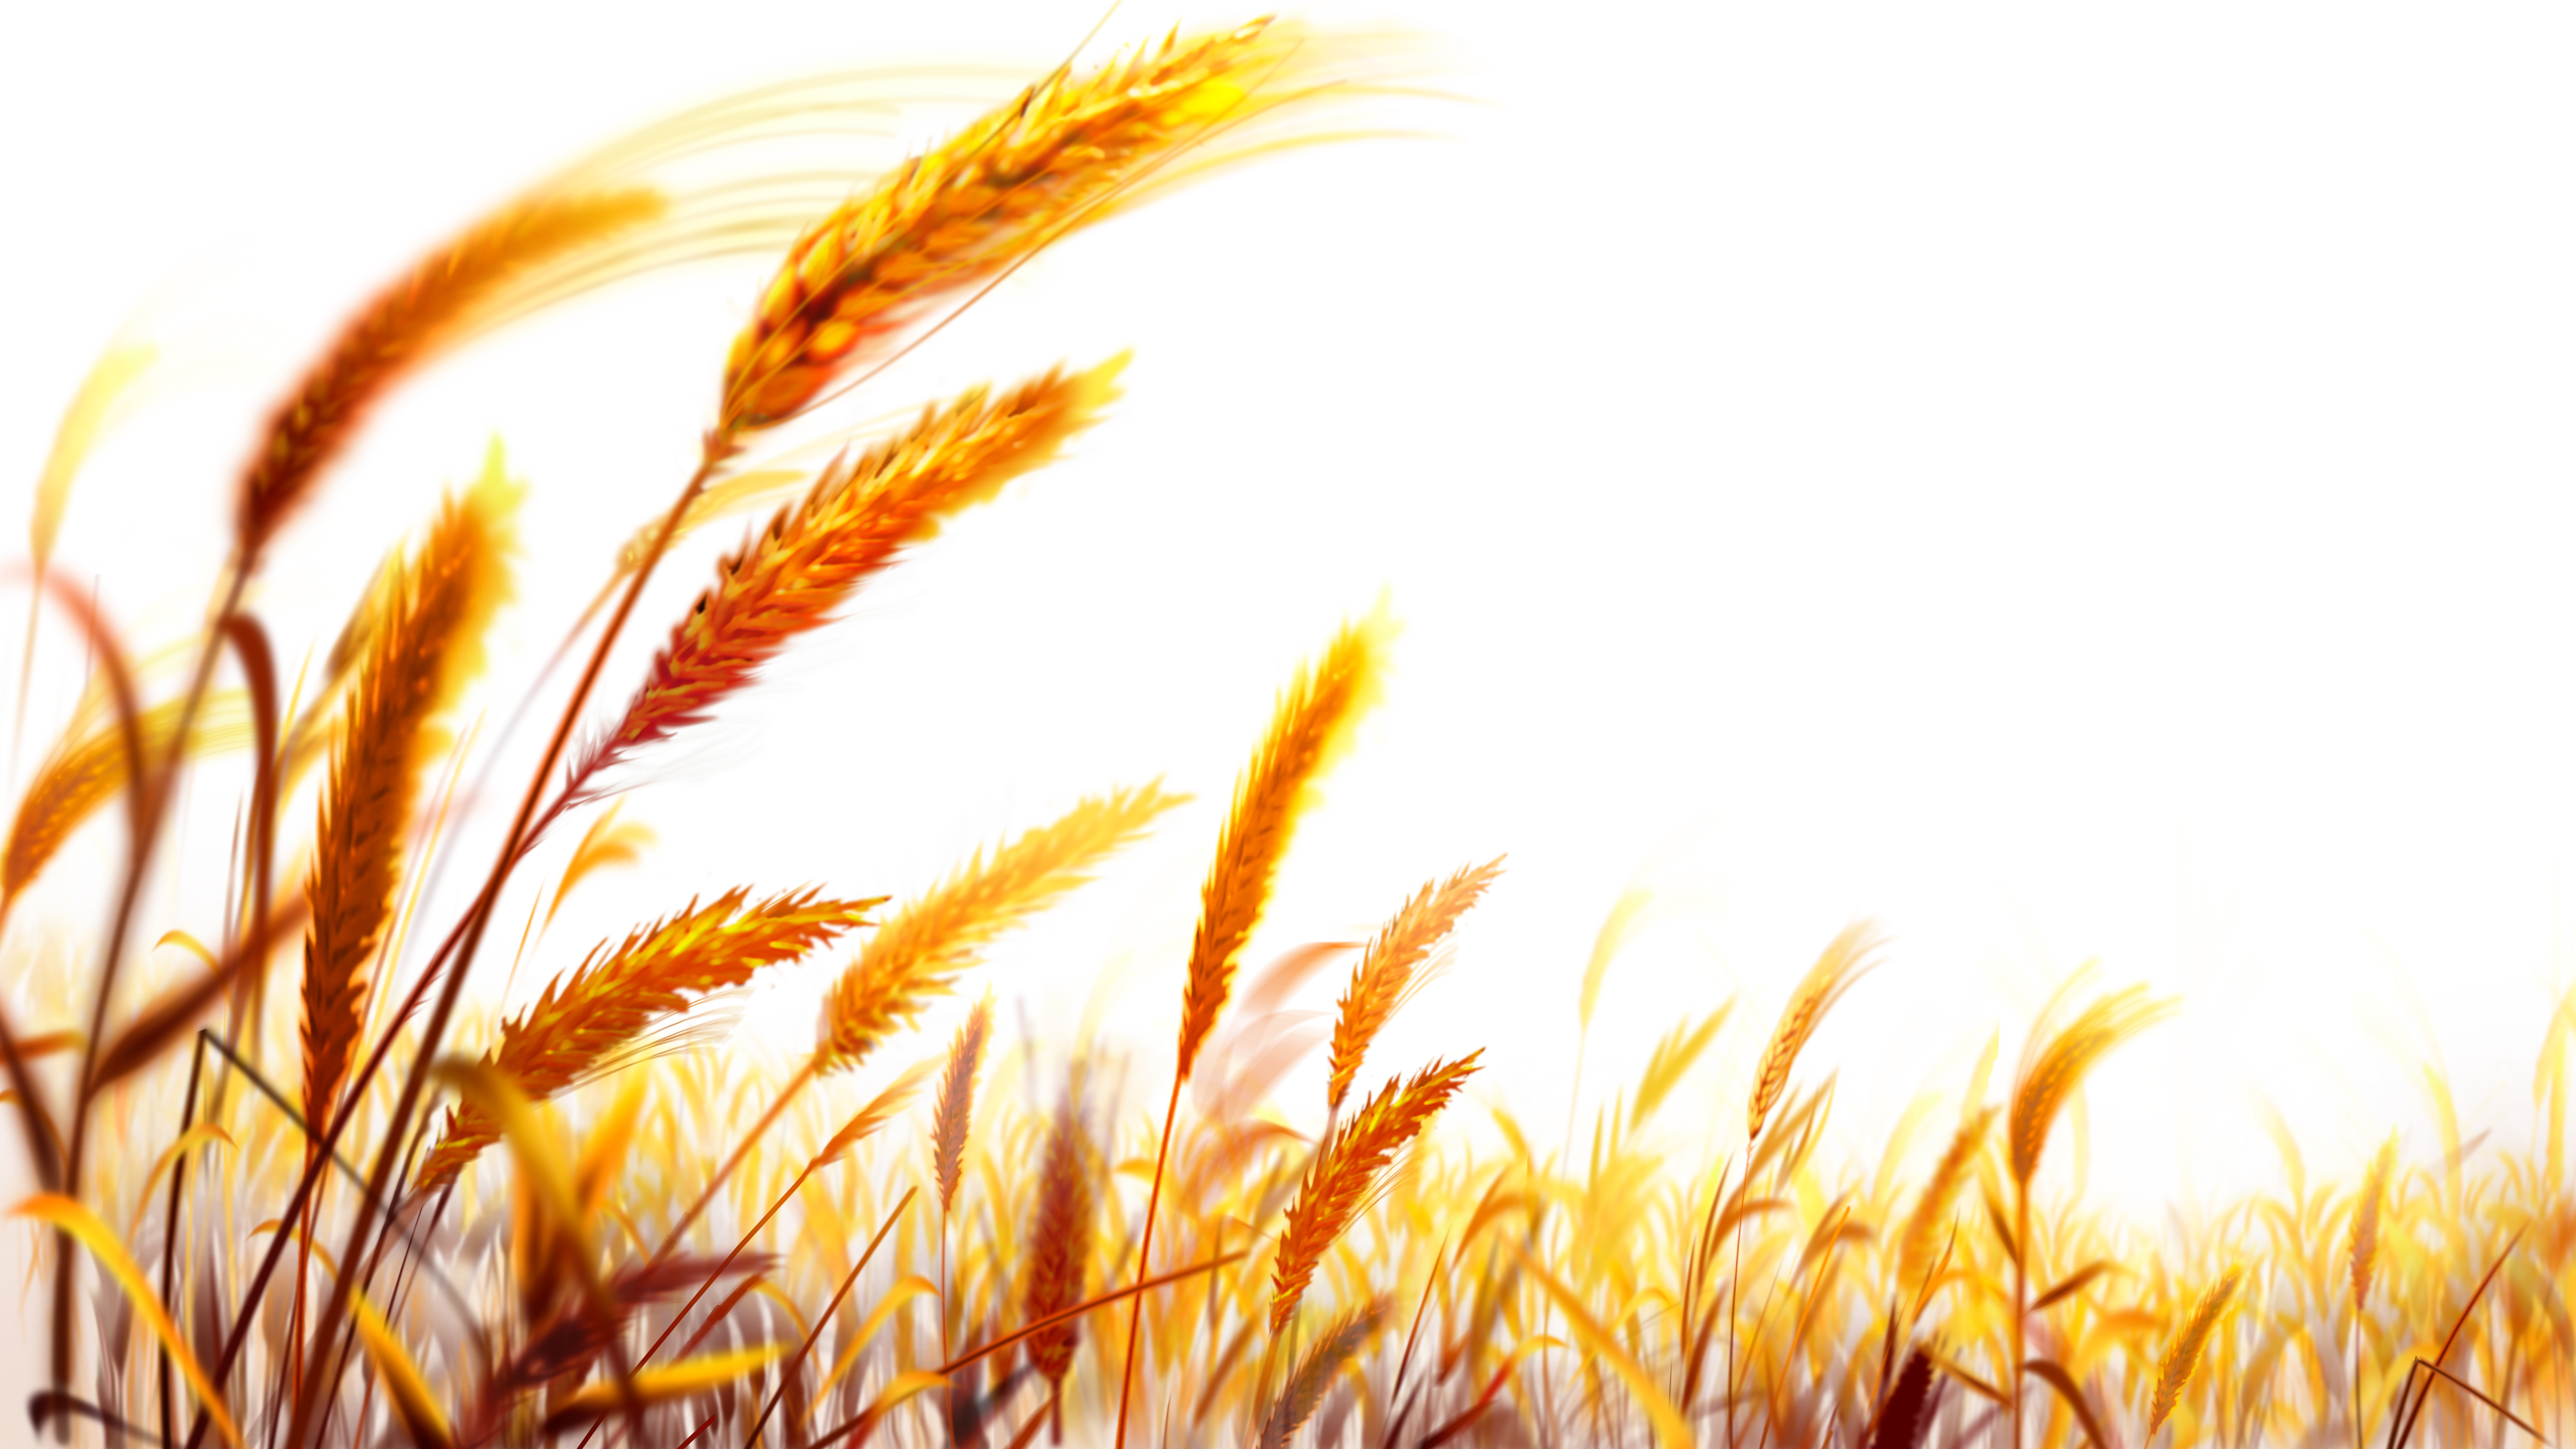 Wheat PNG Image Wheat fields, Poster background design